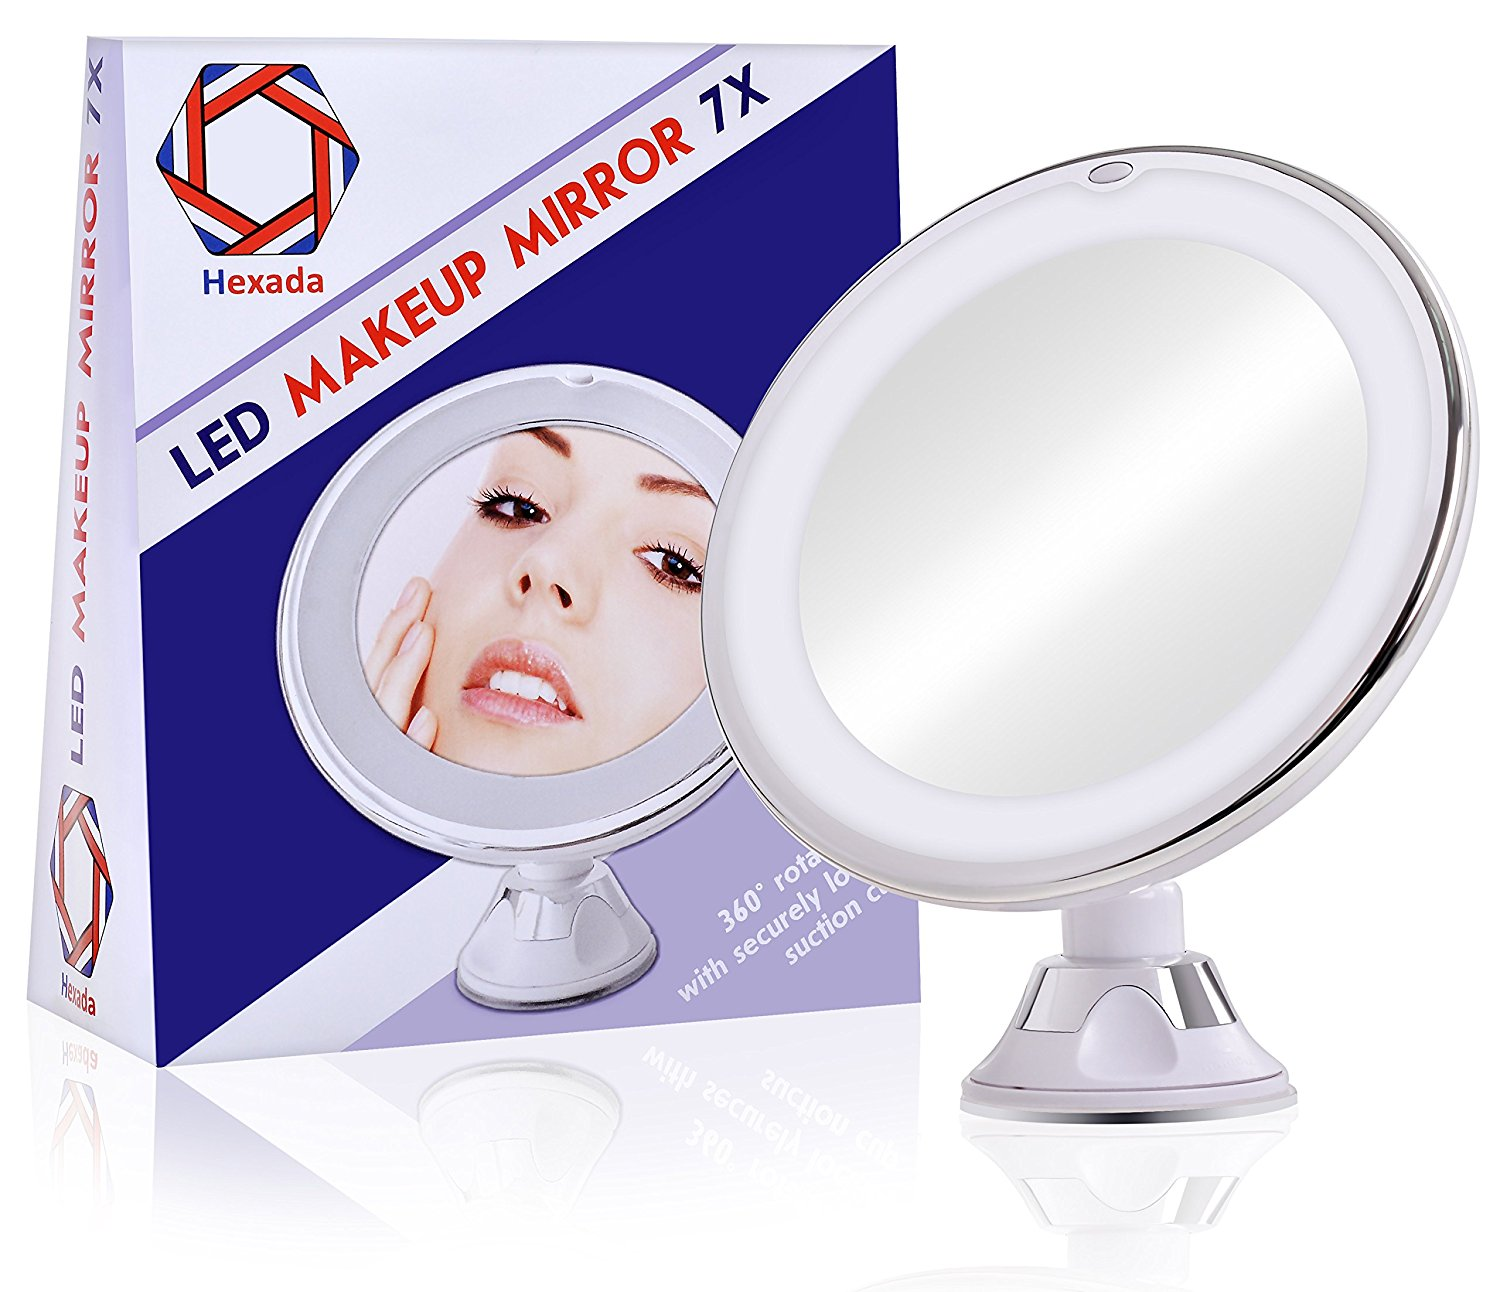 Best Lighted Vanity Mirror-Hexada Bright LED Mirror